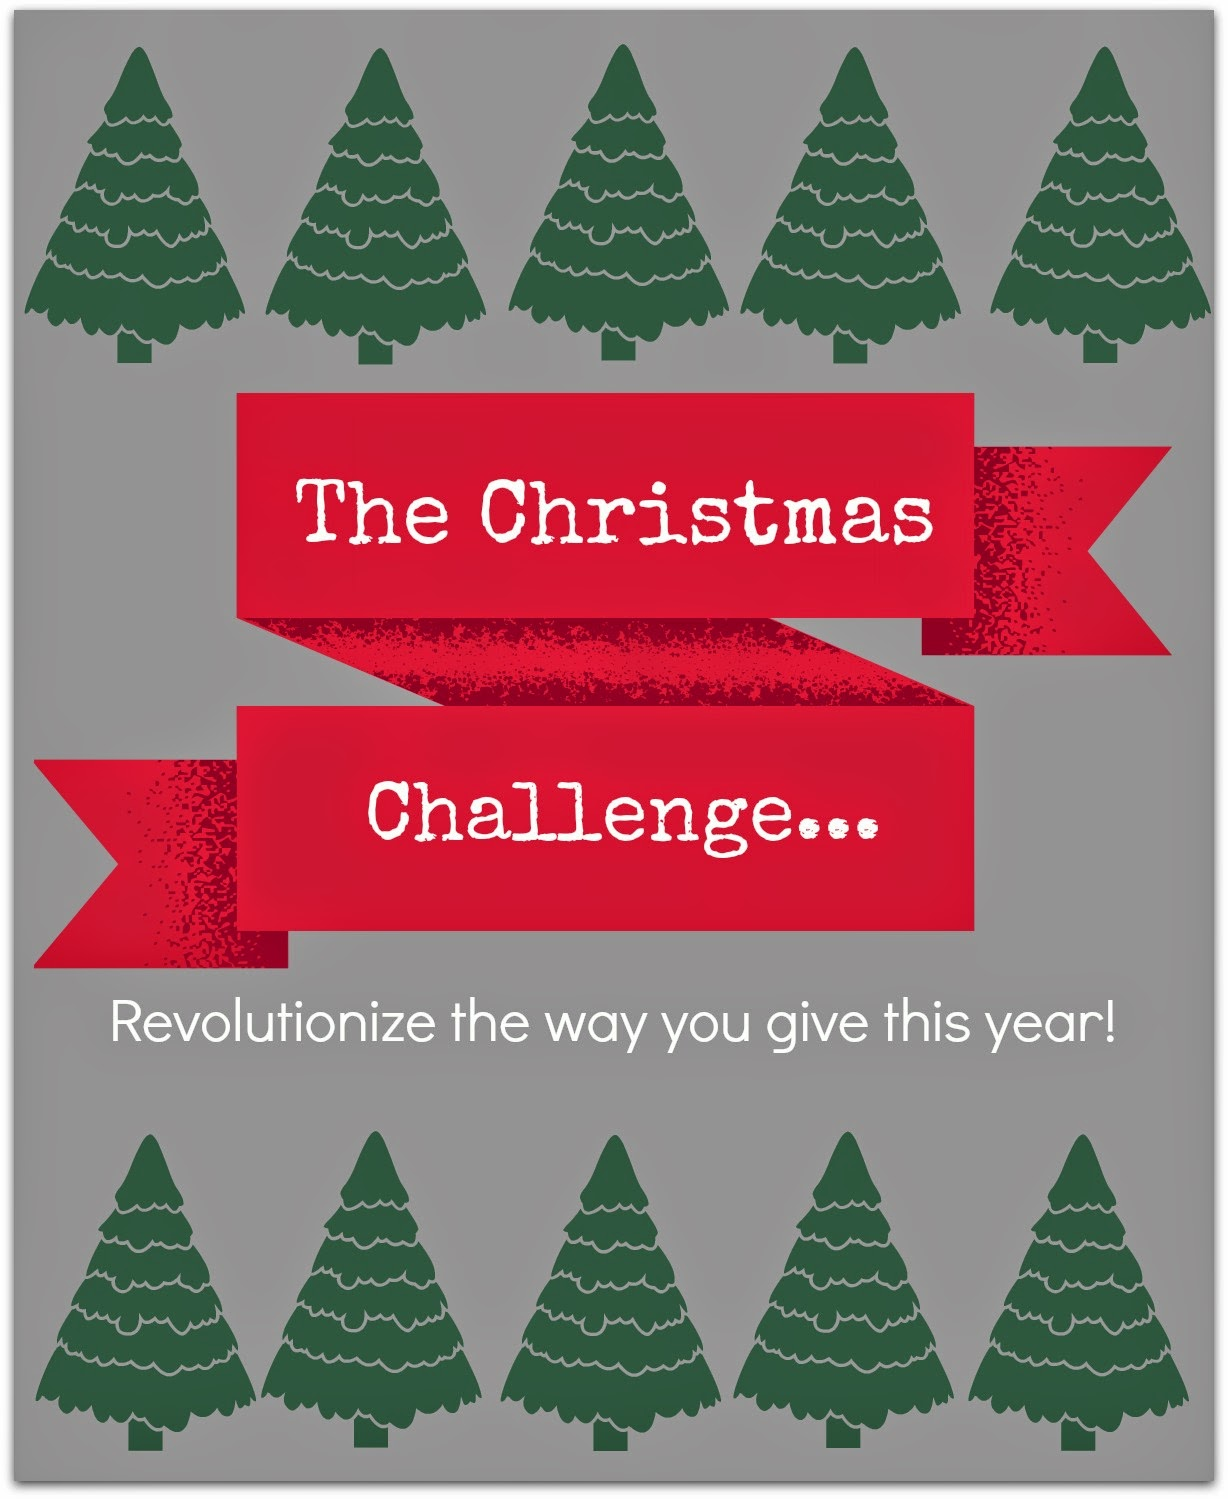 http://www.ourlifeonabudget.com/search/label/The%20Christmas%20Challenge